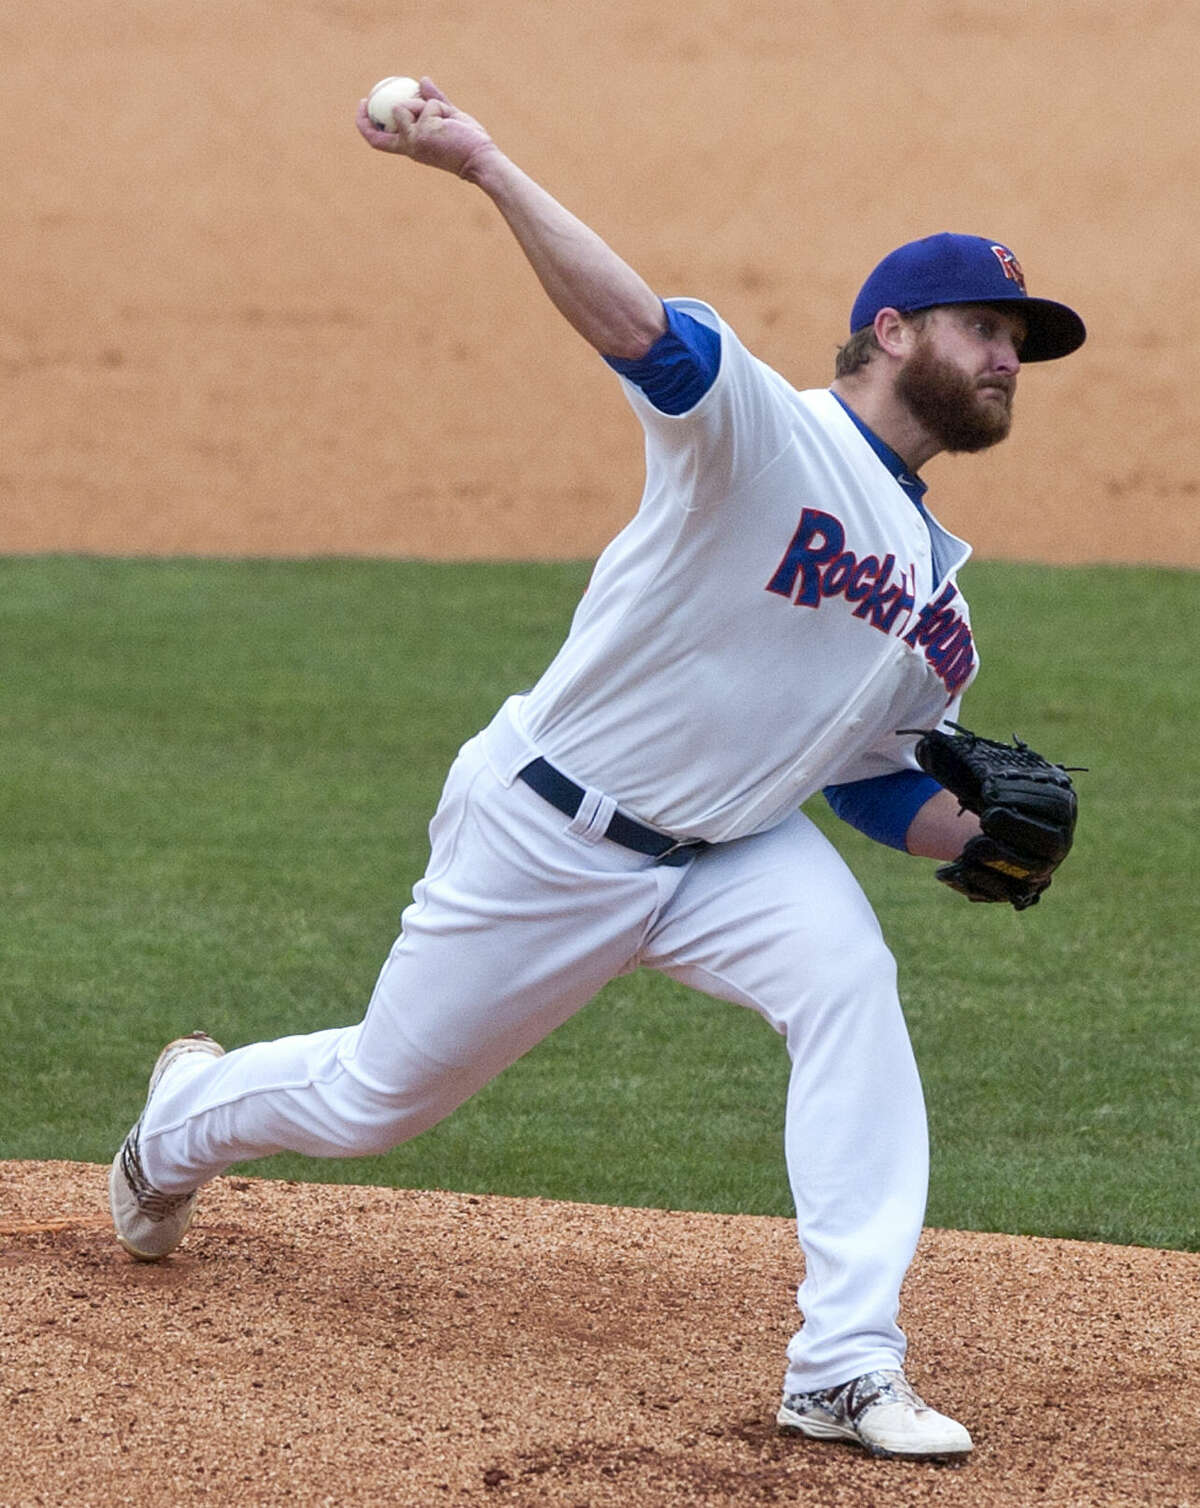 Rockhounds Nate Long pitches against Frisco on Tuesday, May 12, 2015 at Security Bank Ballpark. James Durbin/Reporter-Telegram